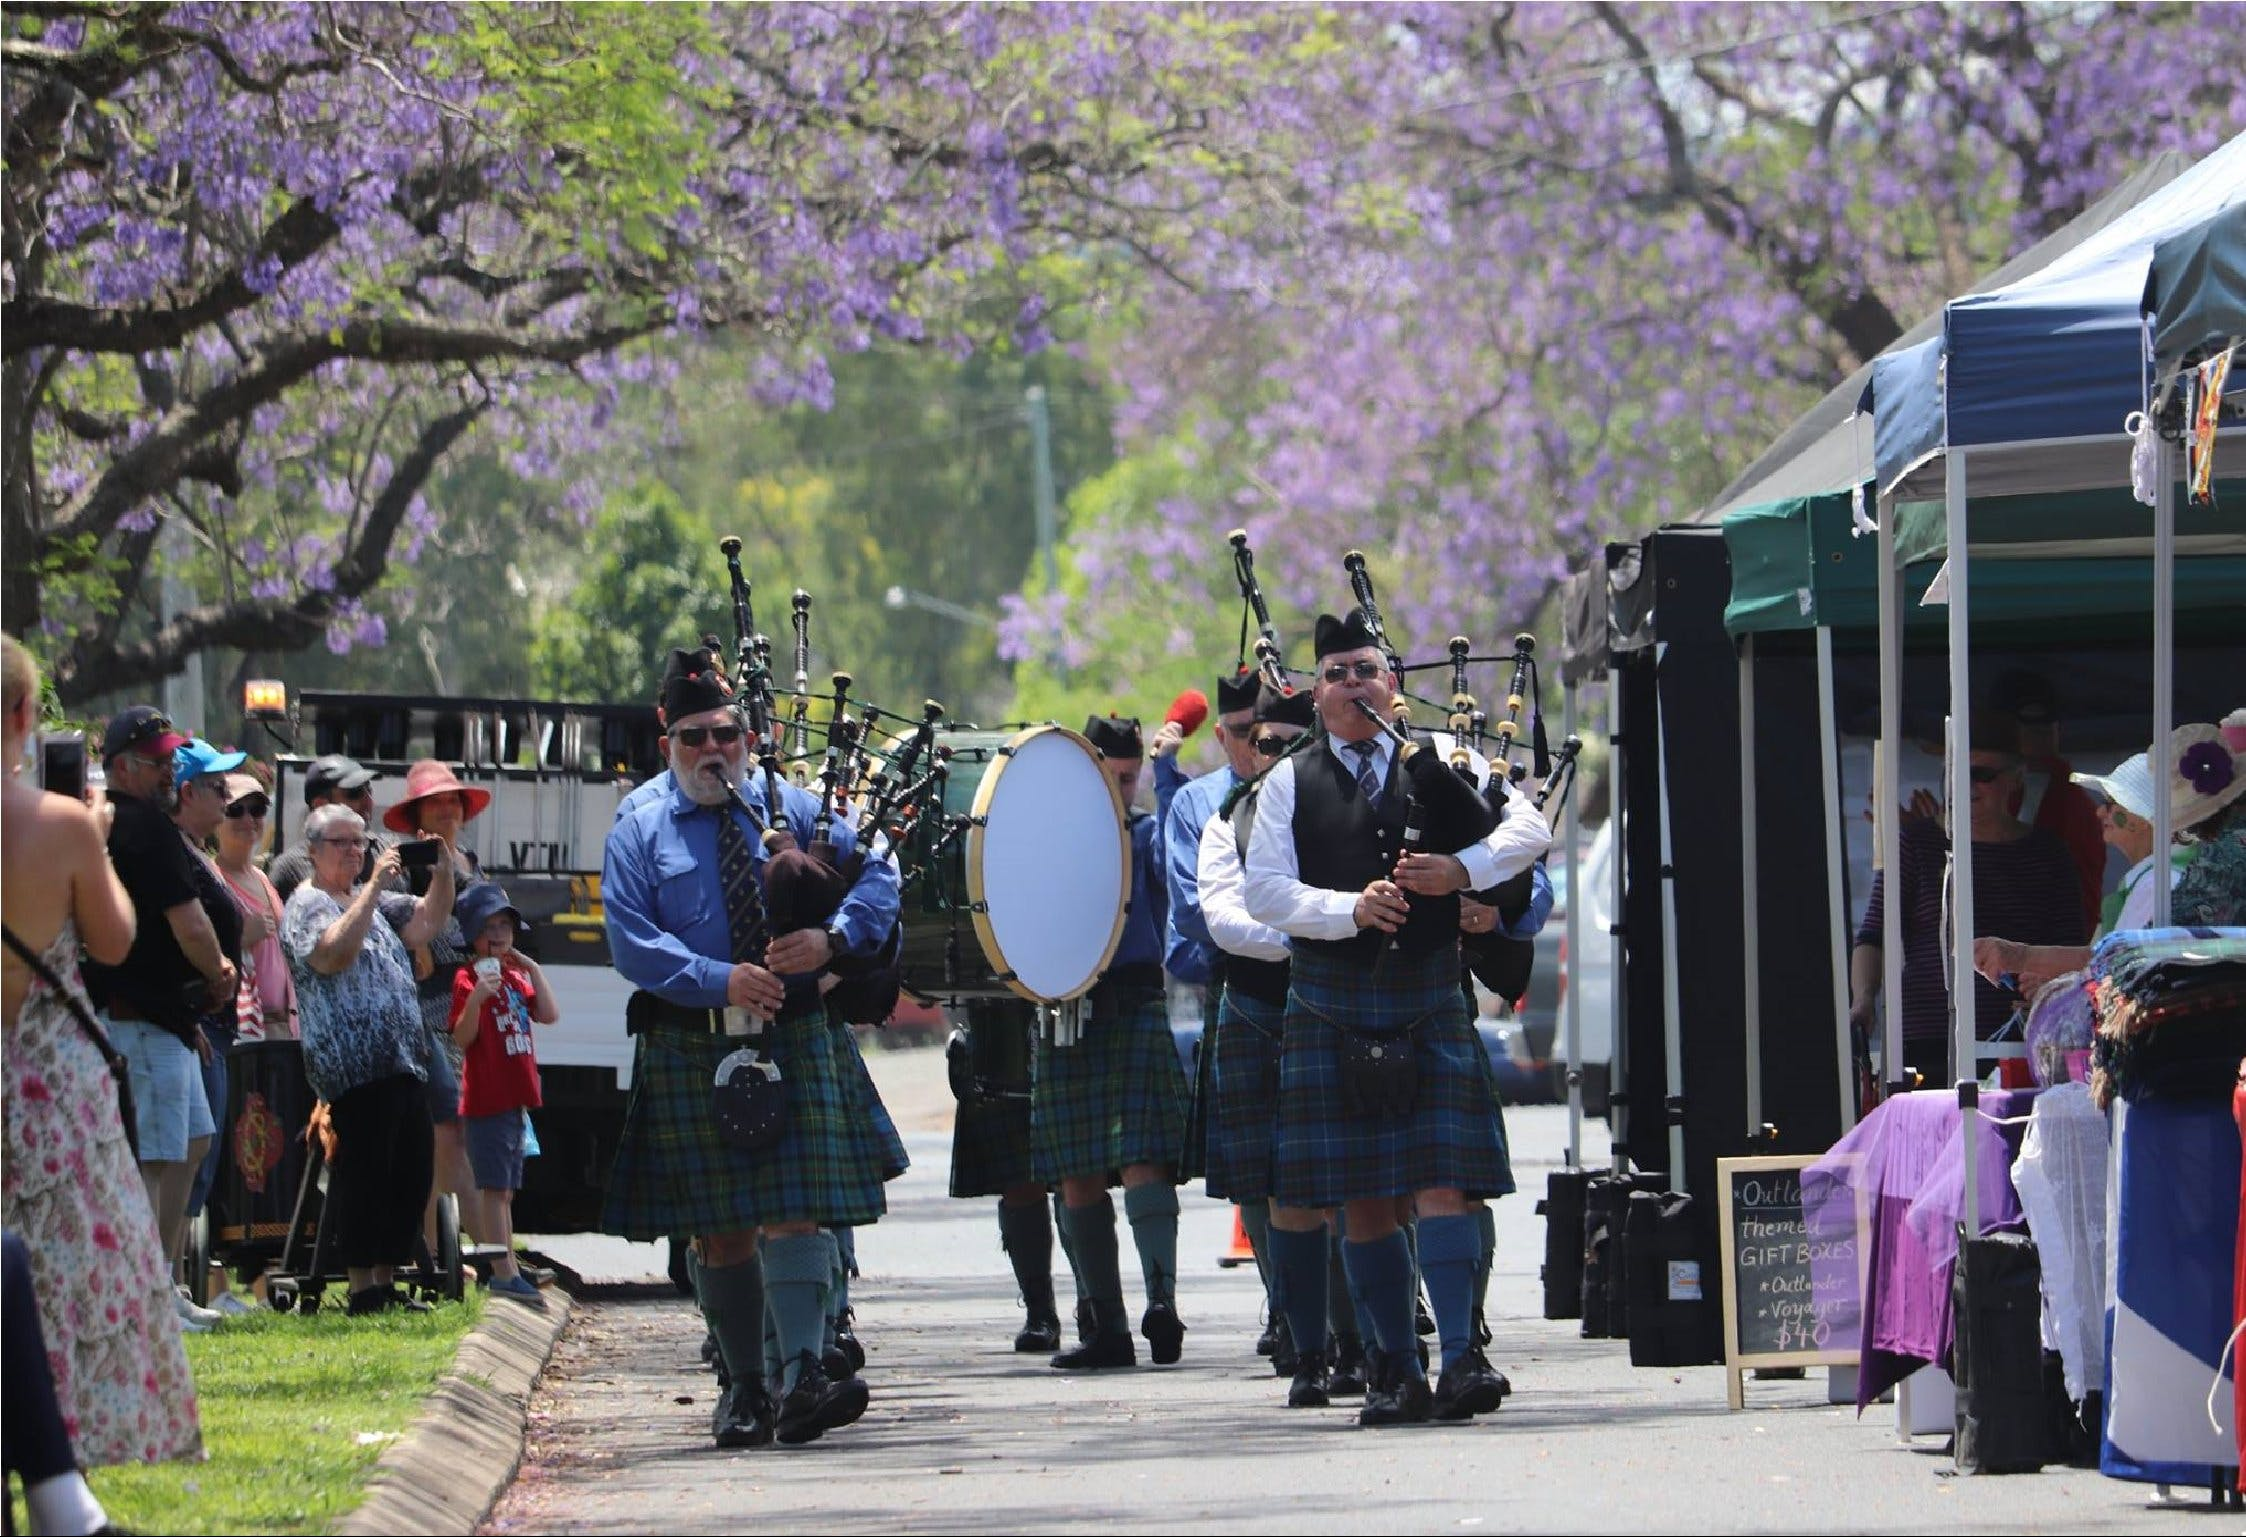 Celtic Festival of Queensland - Sydney Tourism